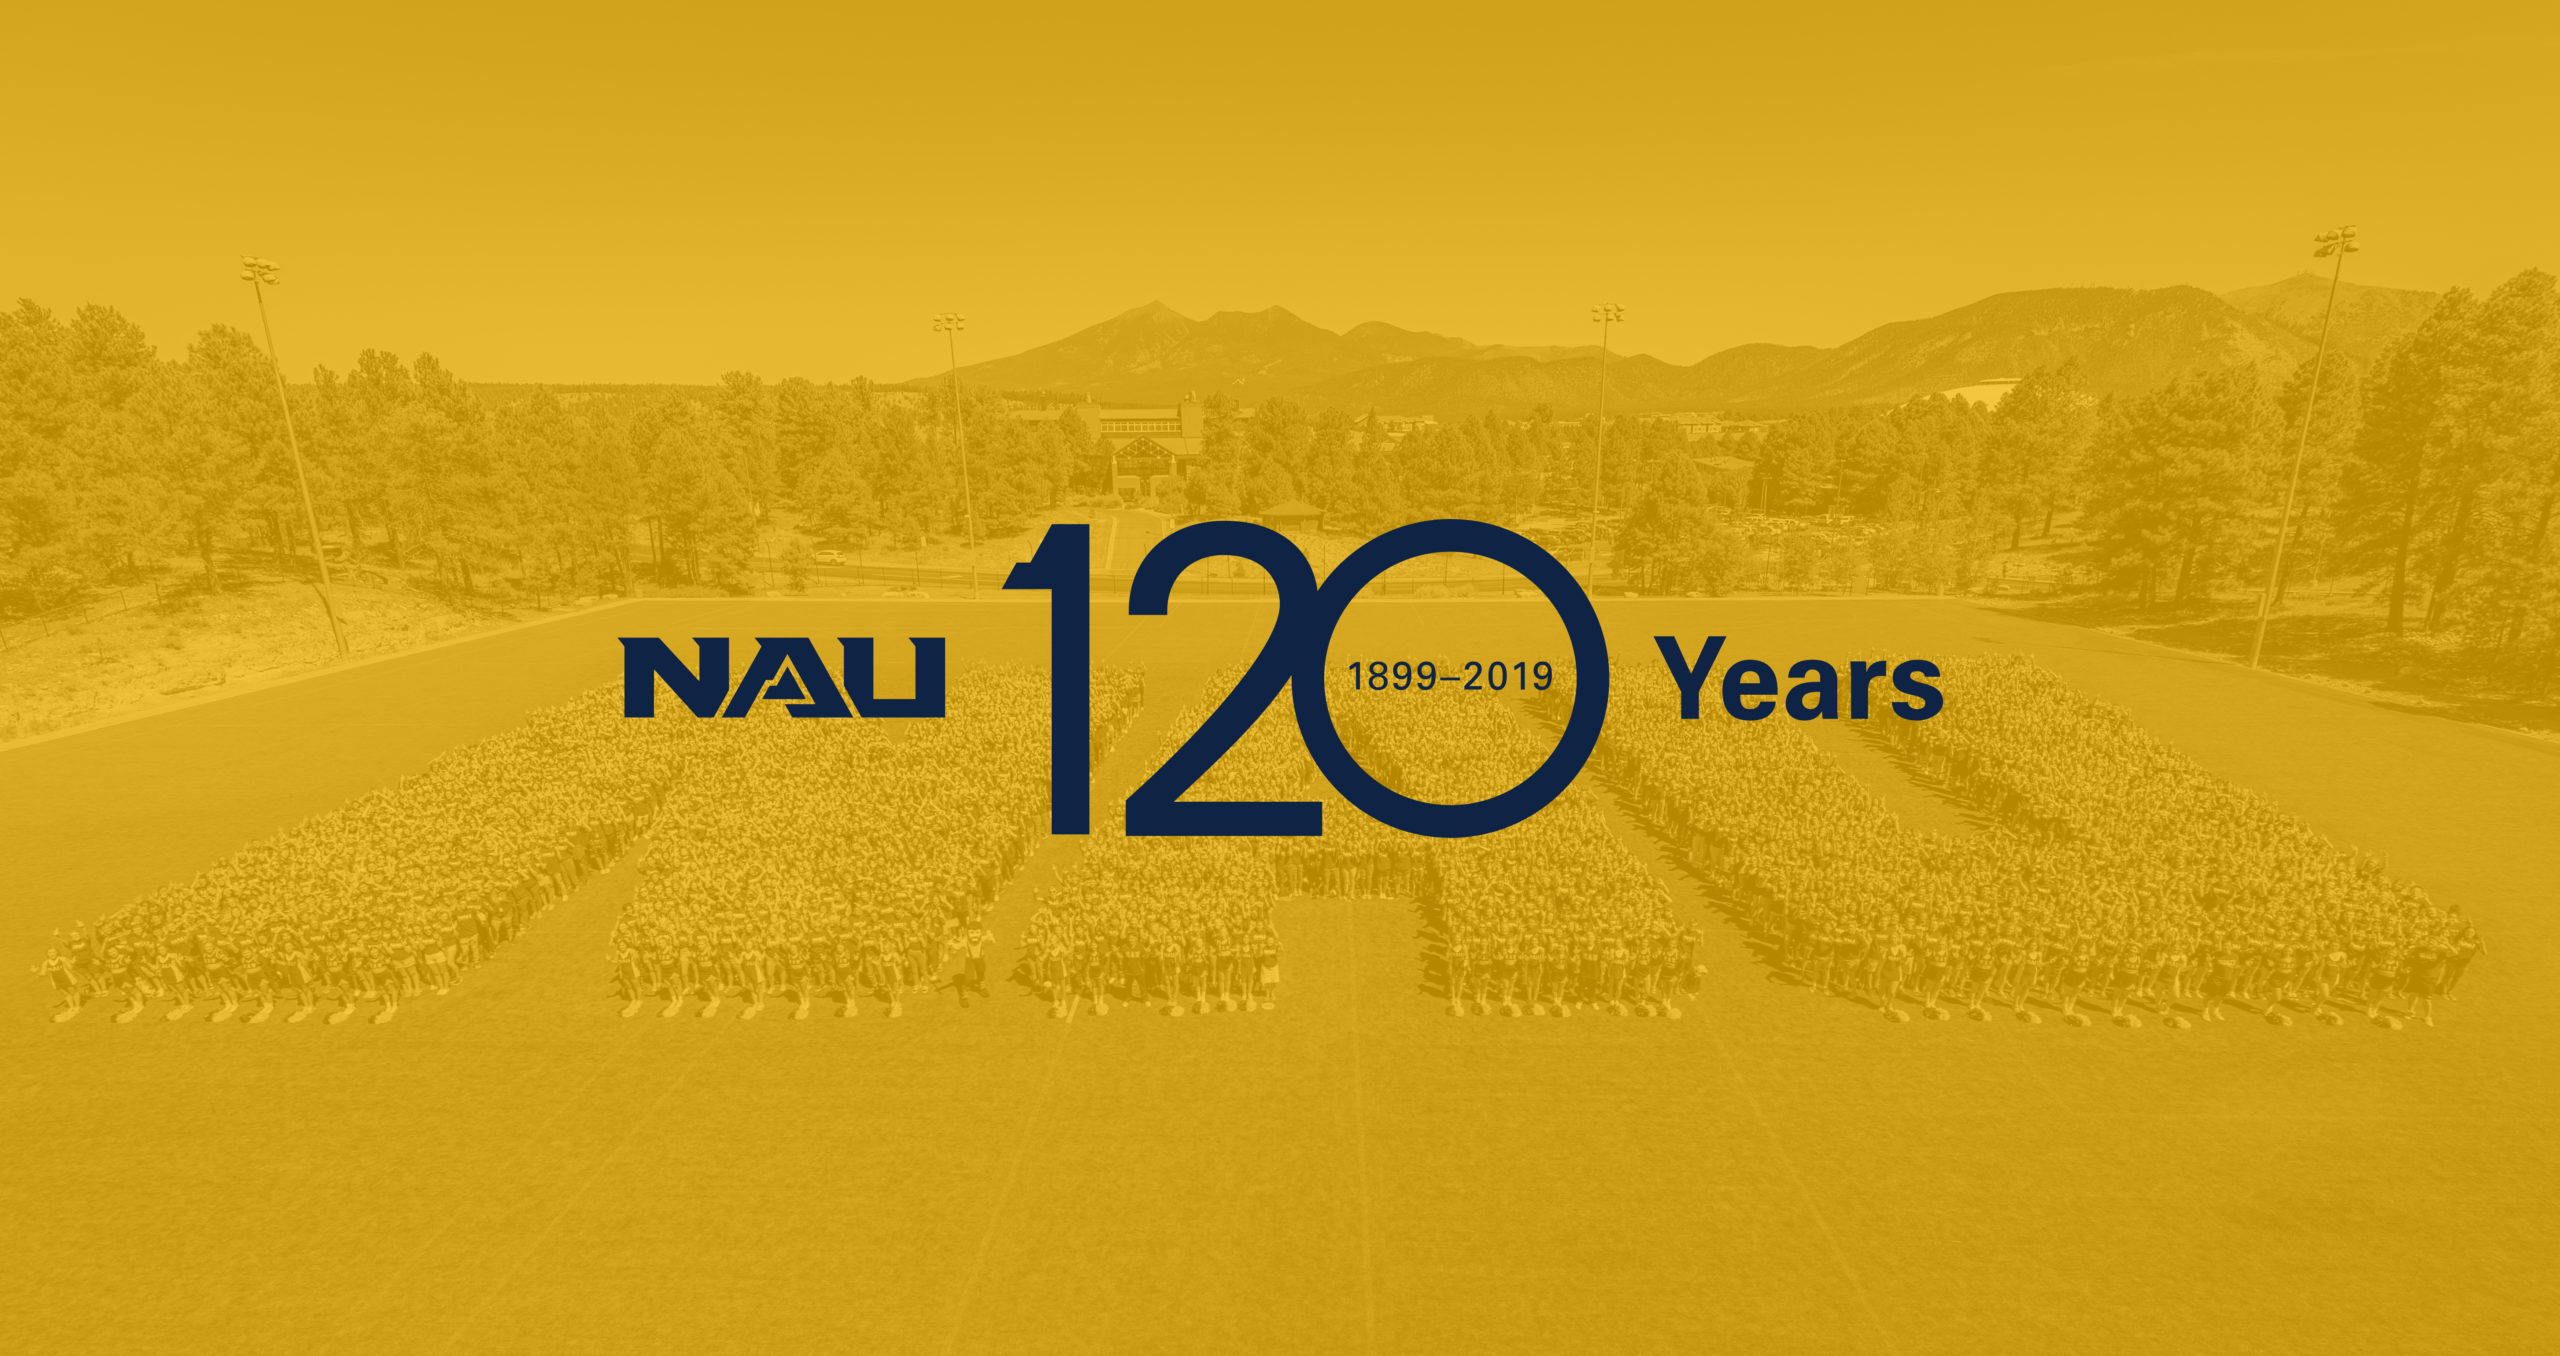 Text reading 'NAU 120 Years, 1899-2019' over an image of students forming the letters 'NAU' in a large open field